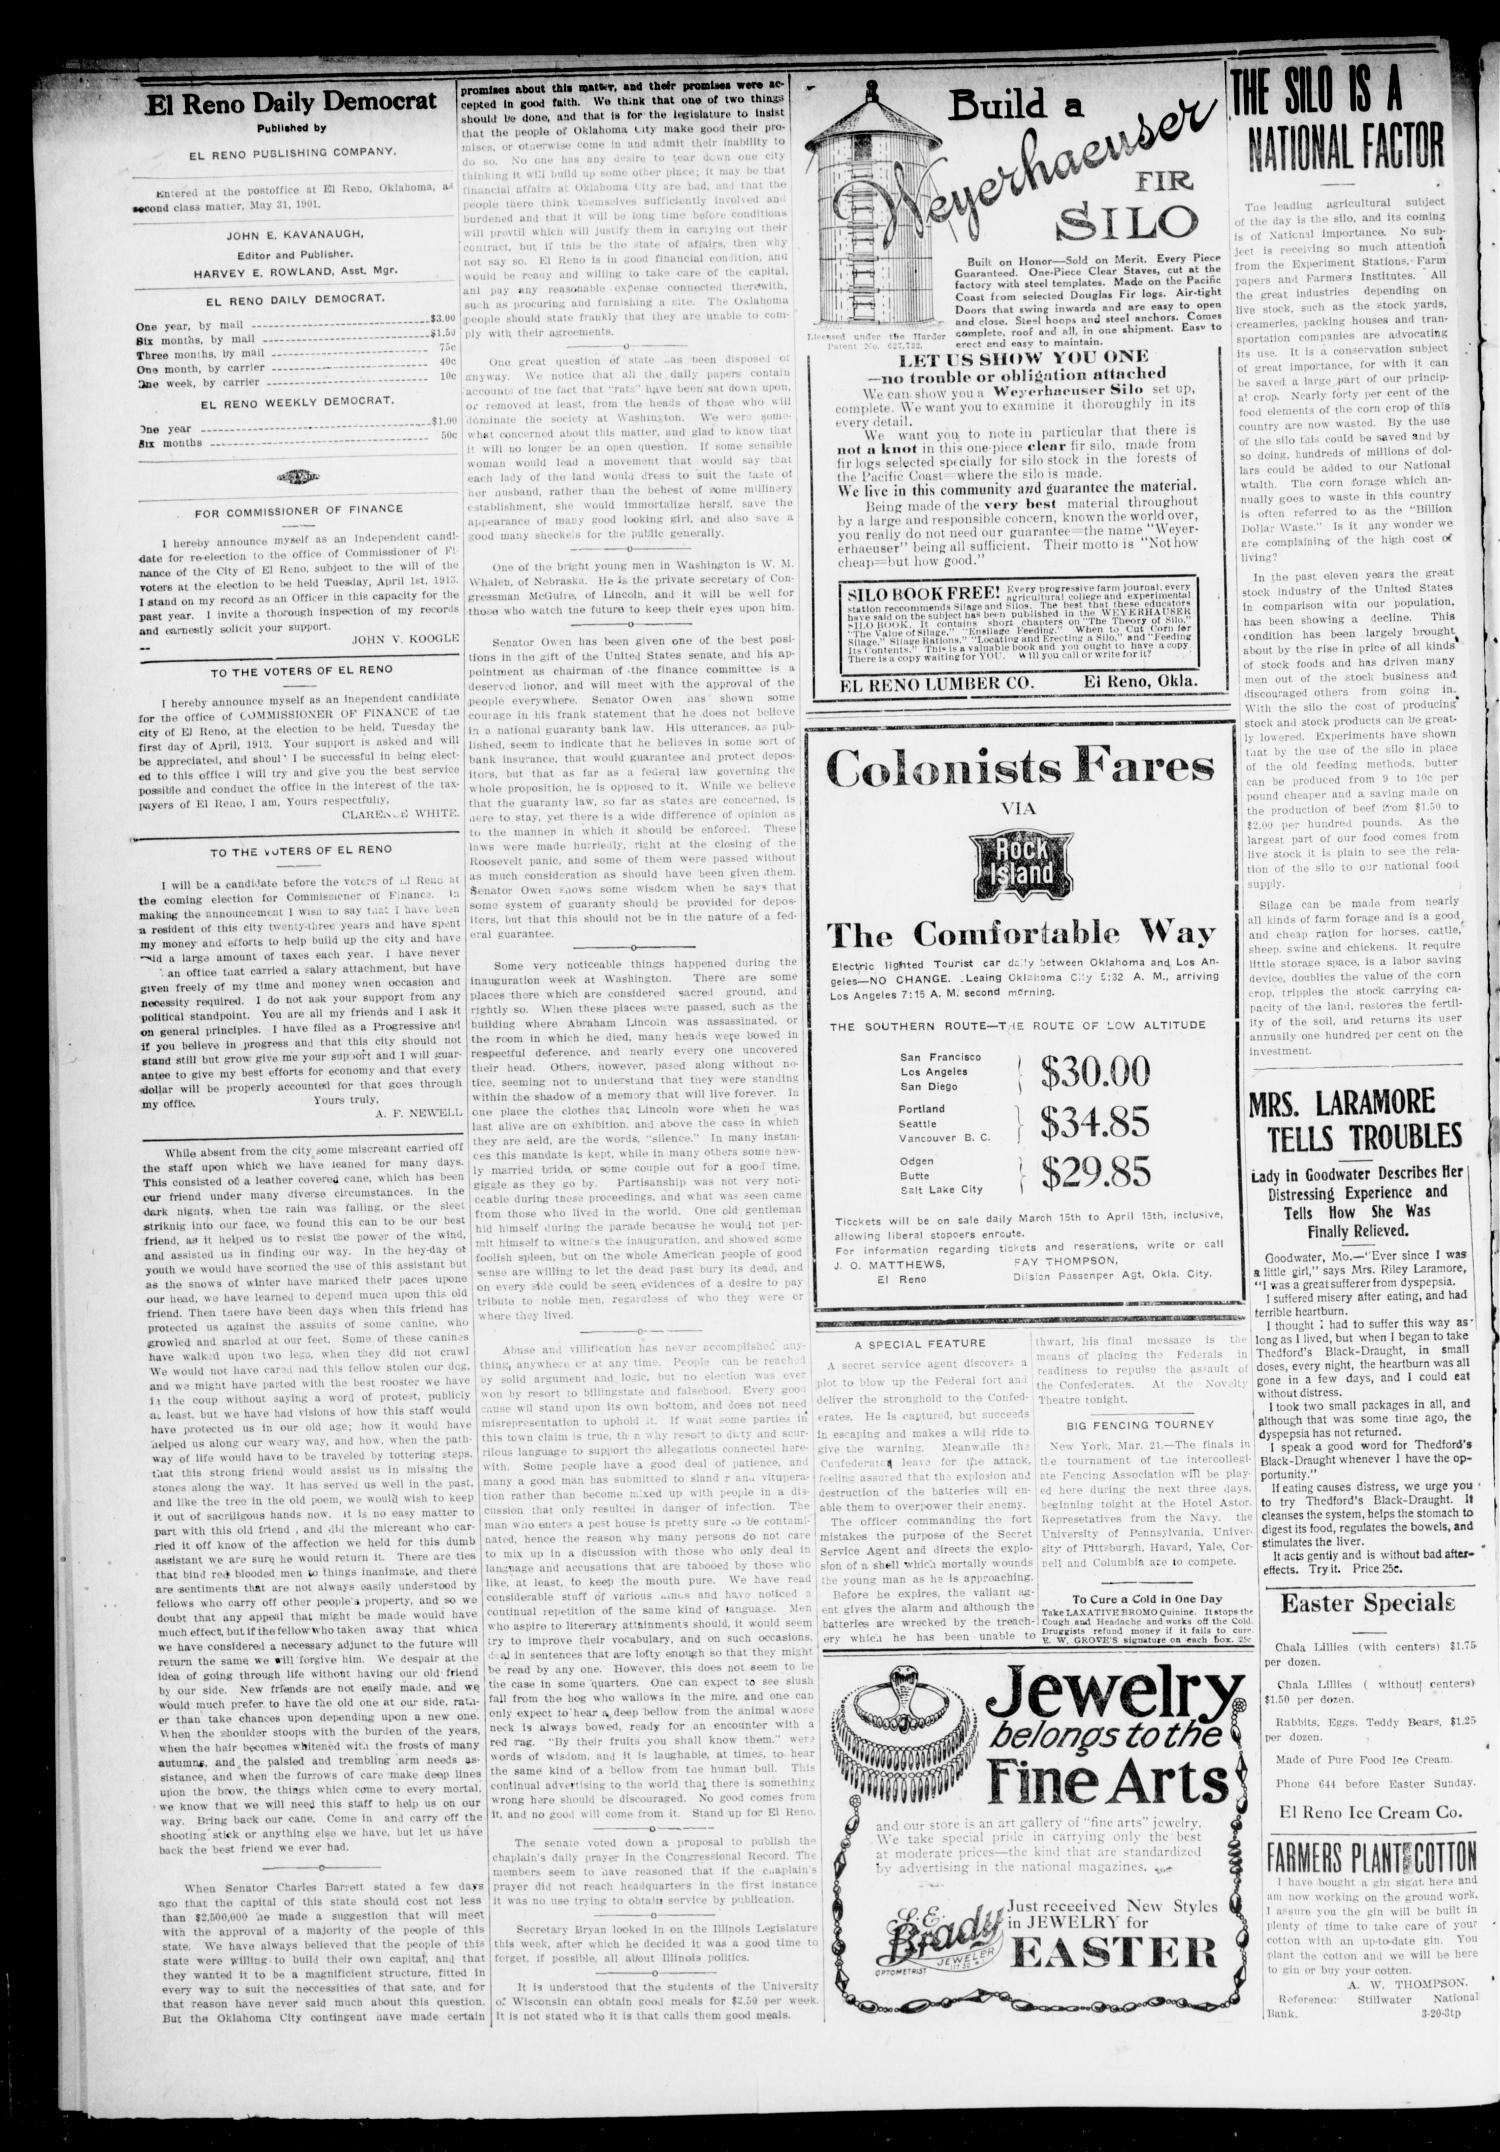 El Reno Daily Democrat (El Reno, Okla.), Vol. 22, No. 293, Ed. 1 Saturday, March 22, 1913                                                                                                      [Sequence #]: 2 of 4